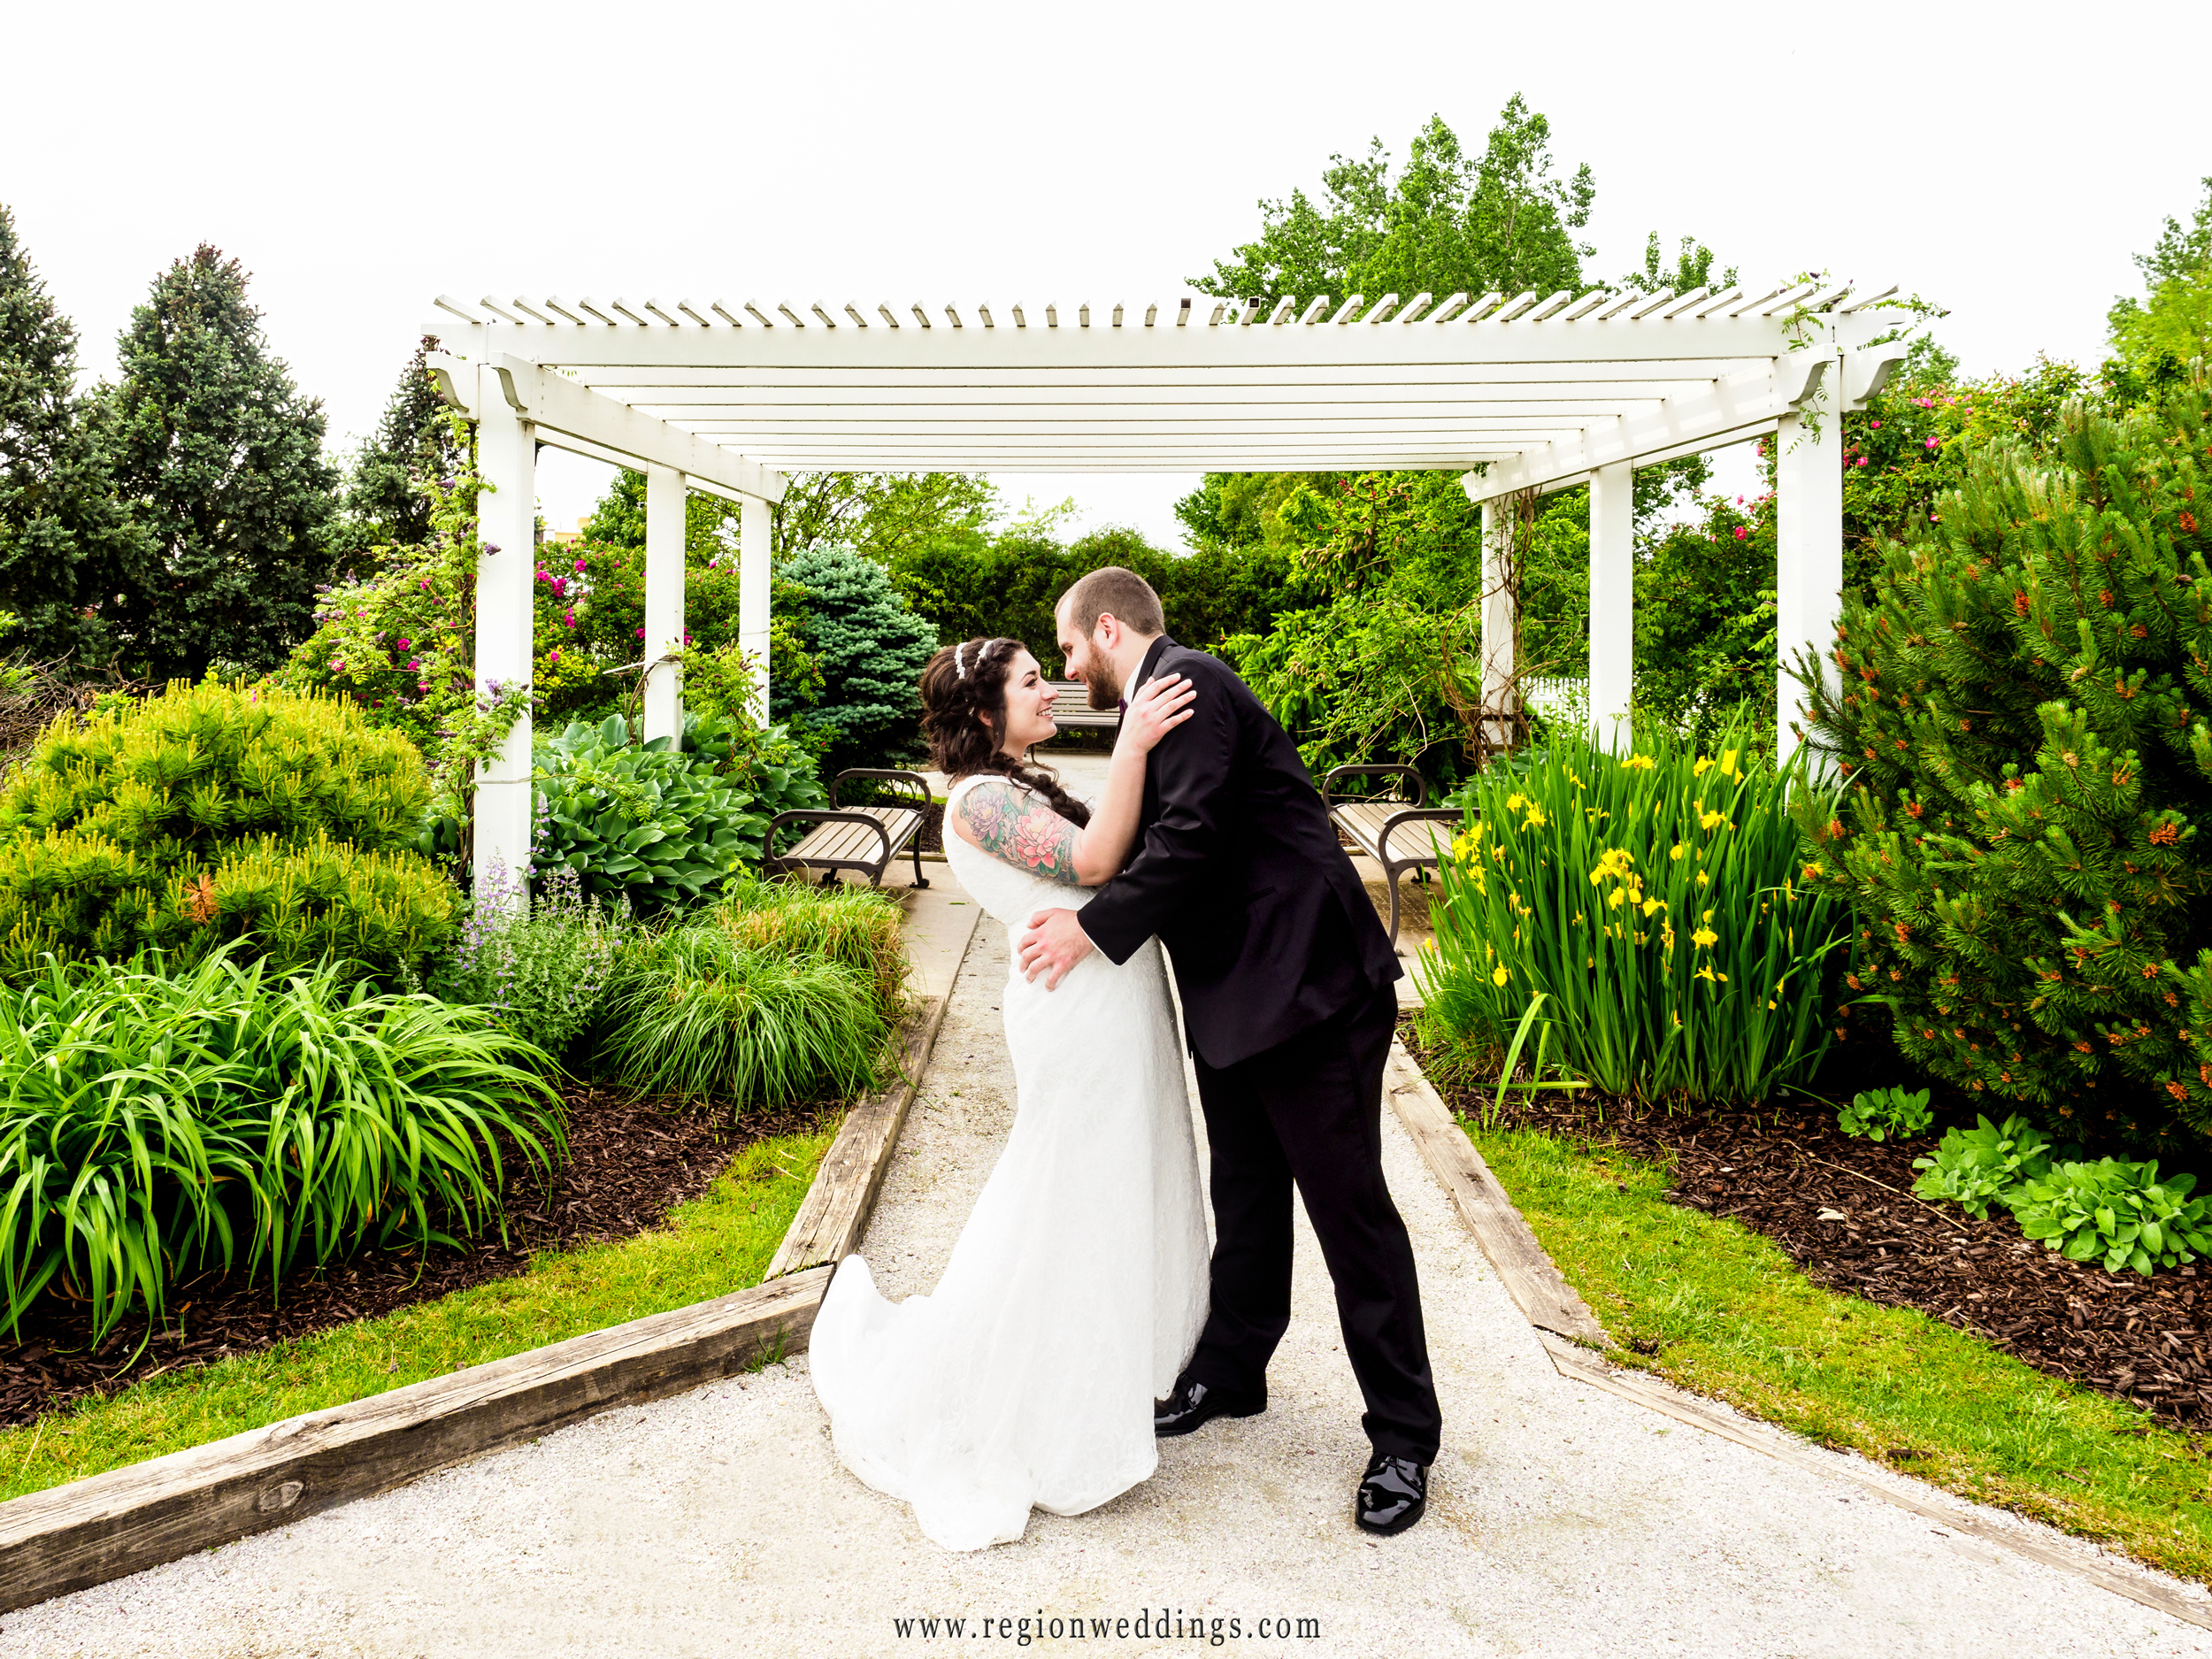 Bride and groom in the colorful garden at Centennial Park.